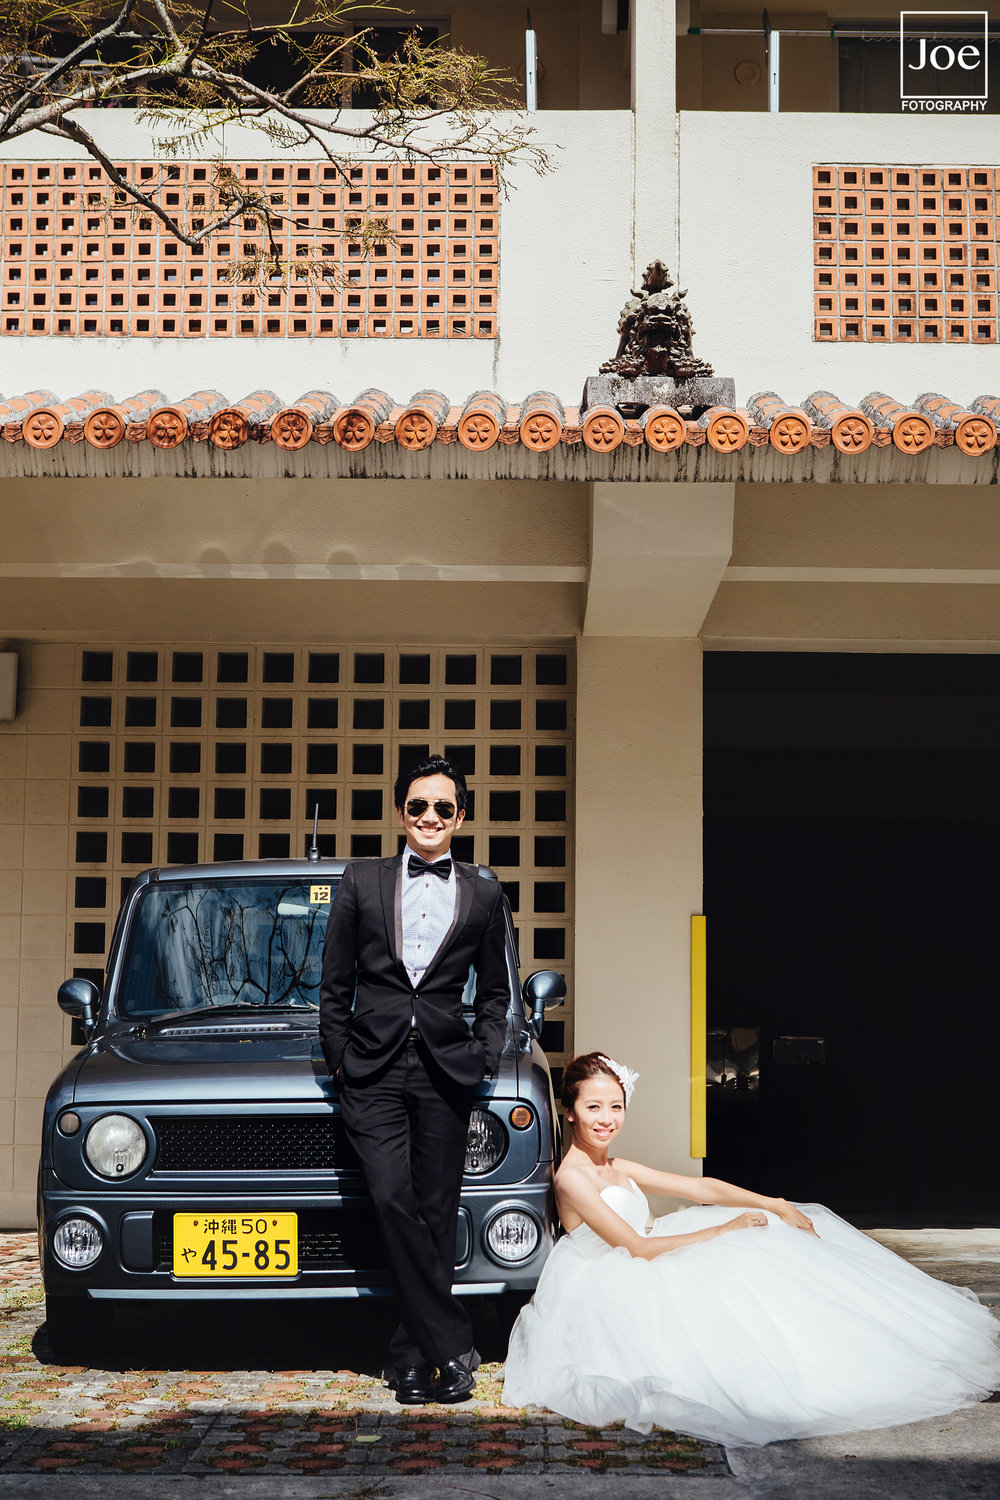 15-okinawa-pre-wedding-melody-amigo-joe-fotography.jpg